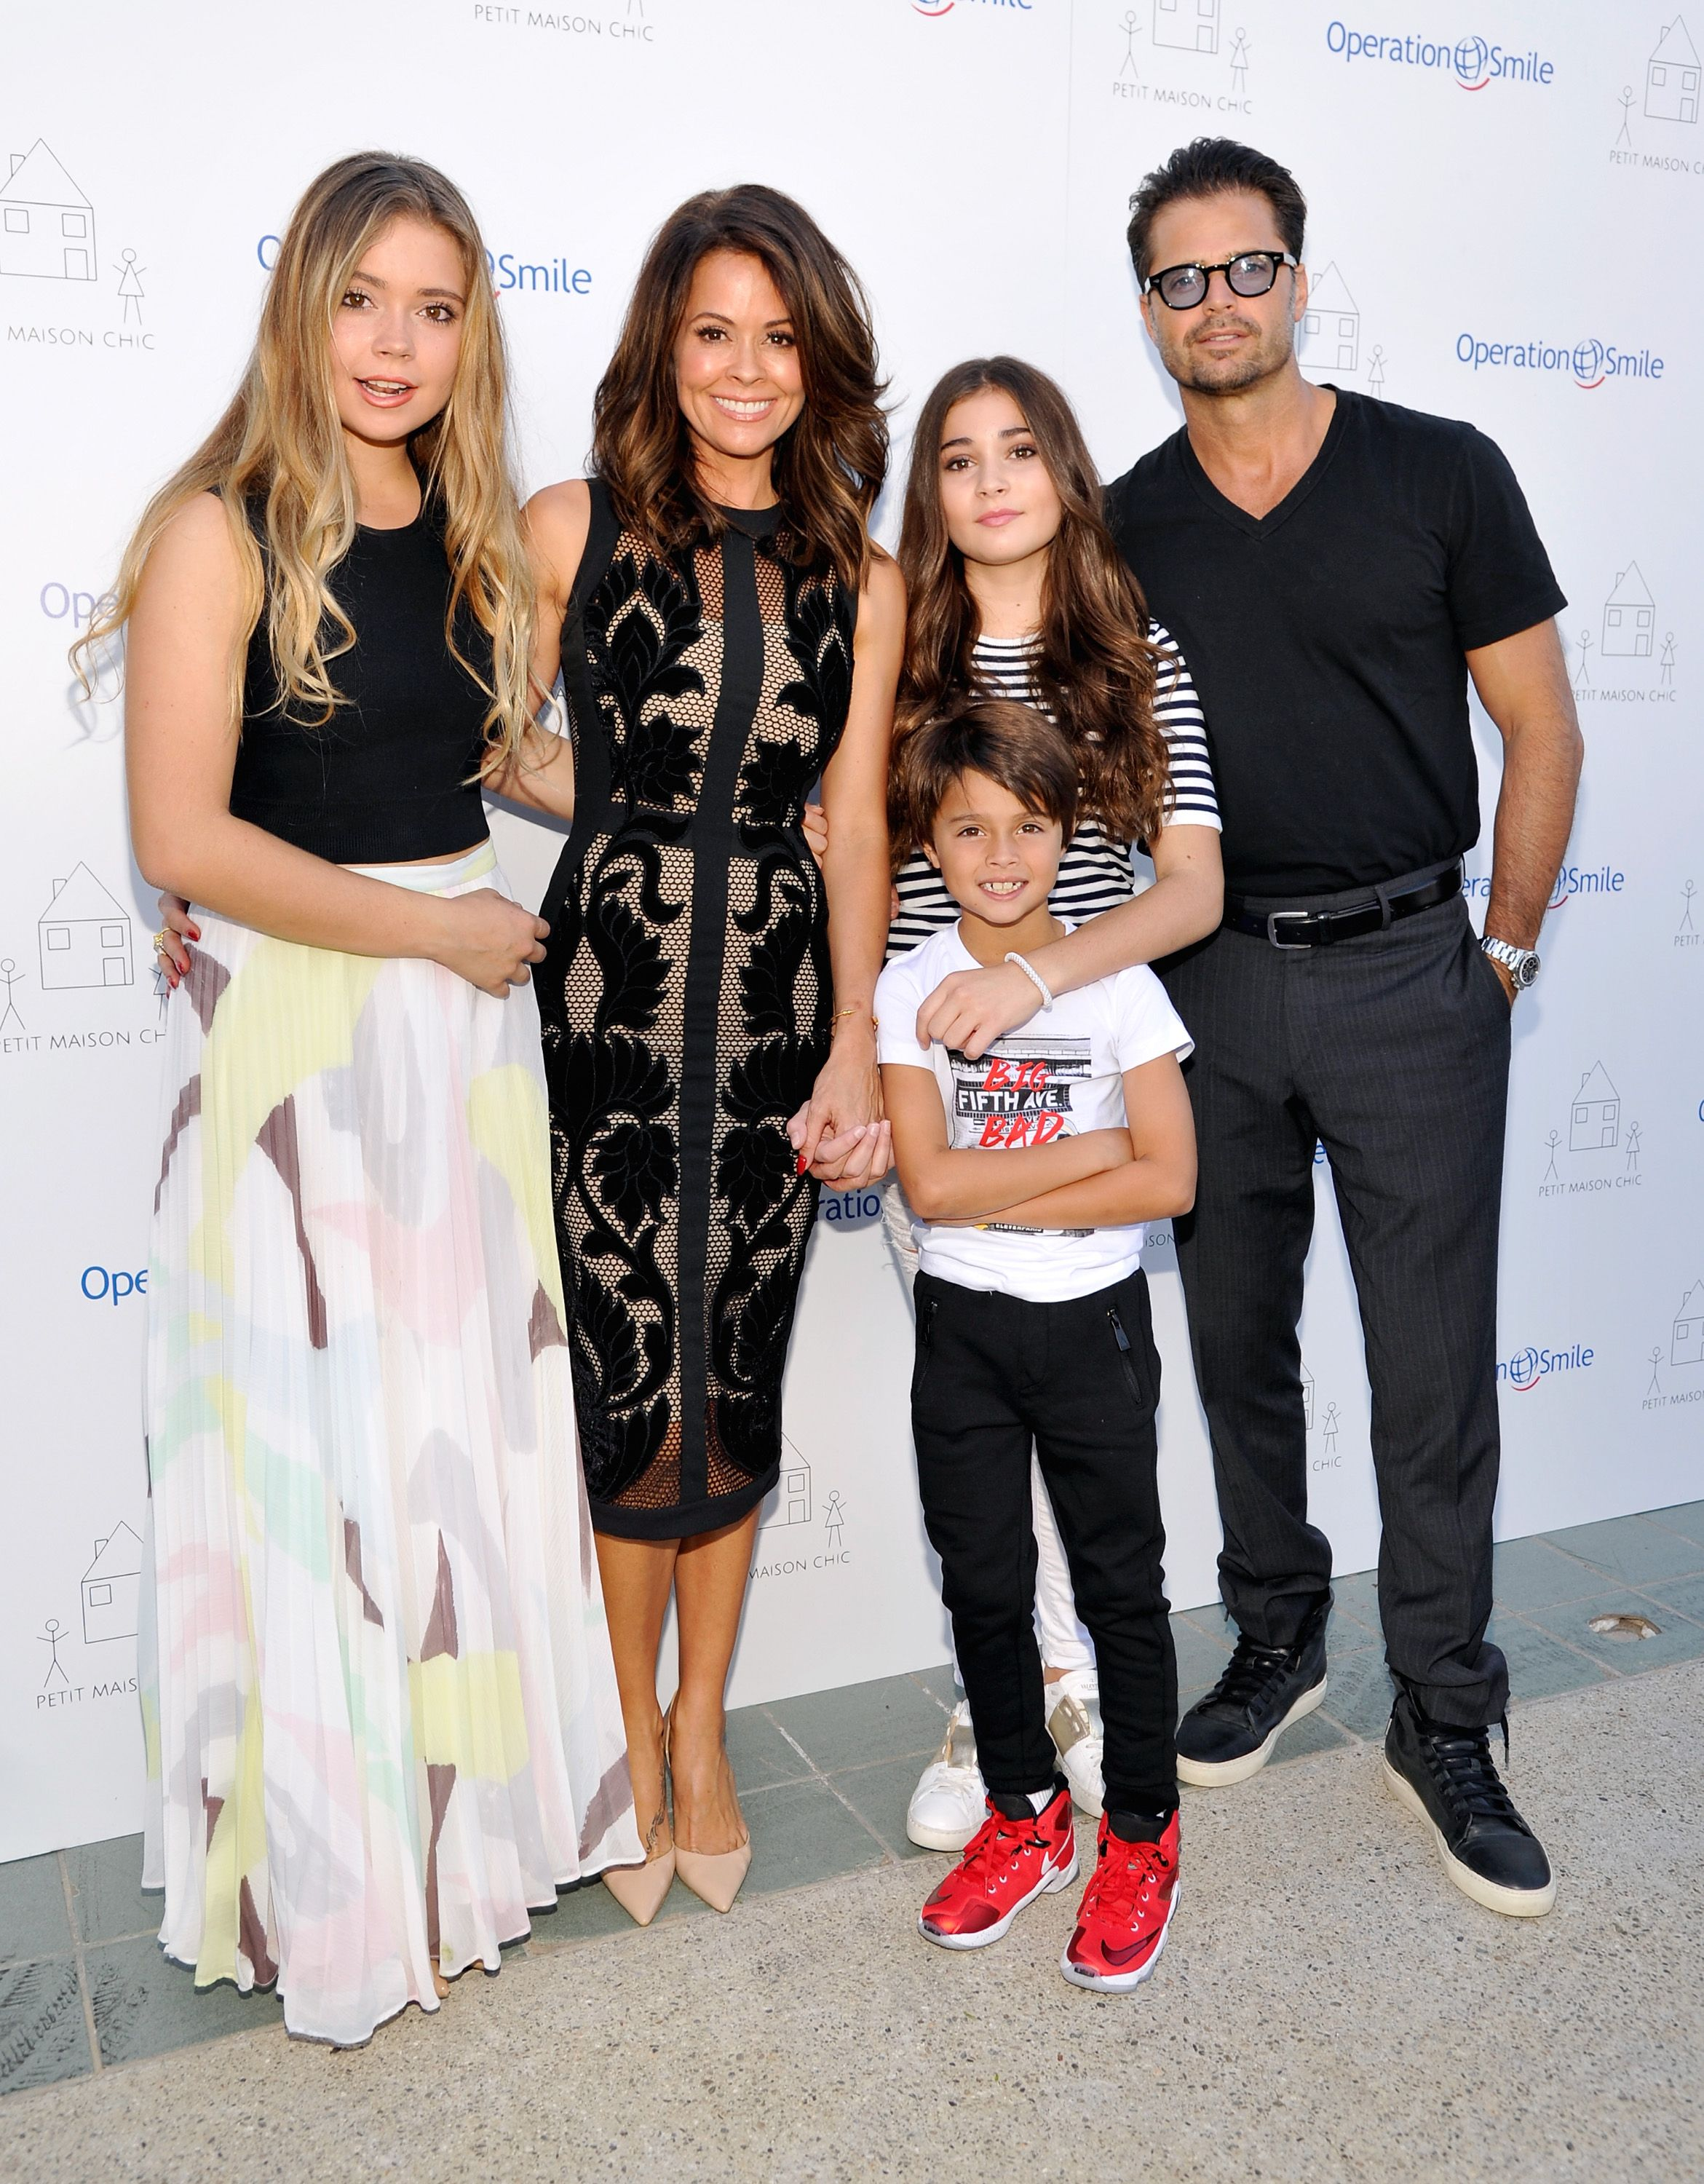 Neriah Fisher, actress Brooke Burke-Charvet, Shaya Charvet, Sierra Fisher and actor David Charvet at the Petit Maison Chic fashion show honoring Operation Smile on November 21, 2015 | Photo: Getty Images